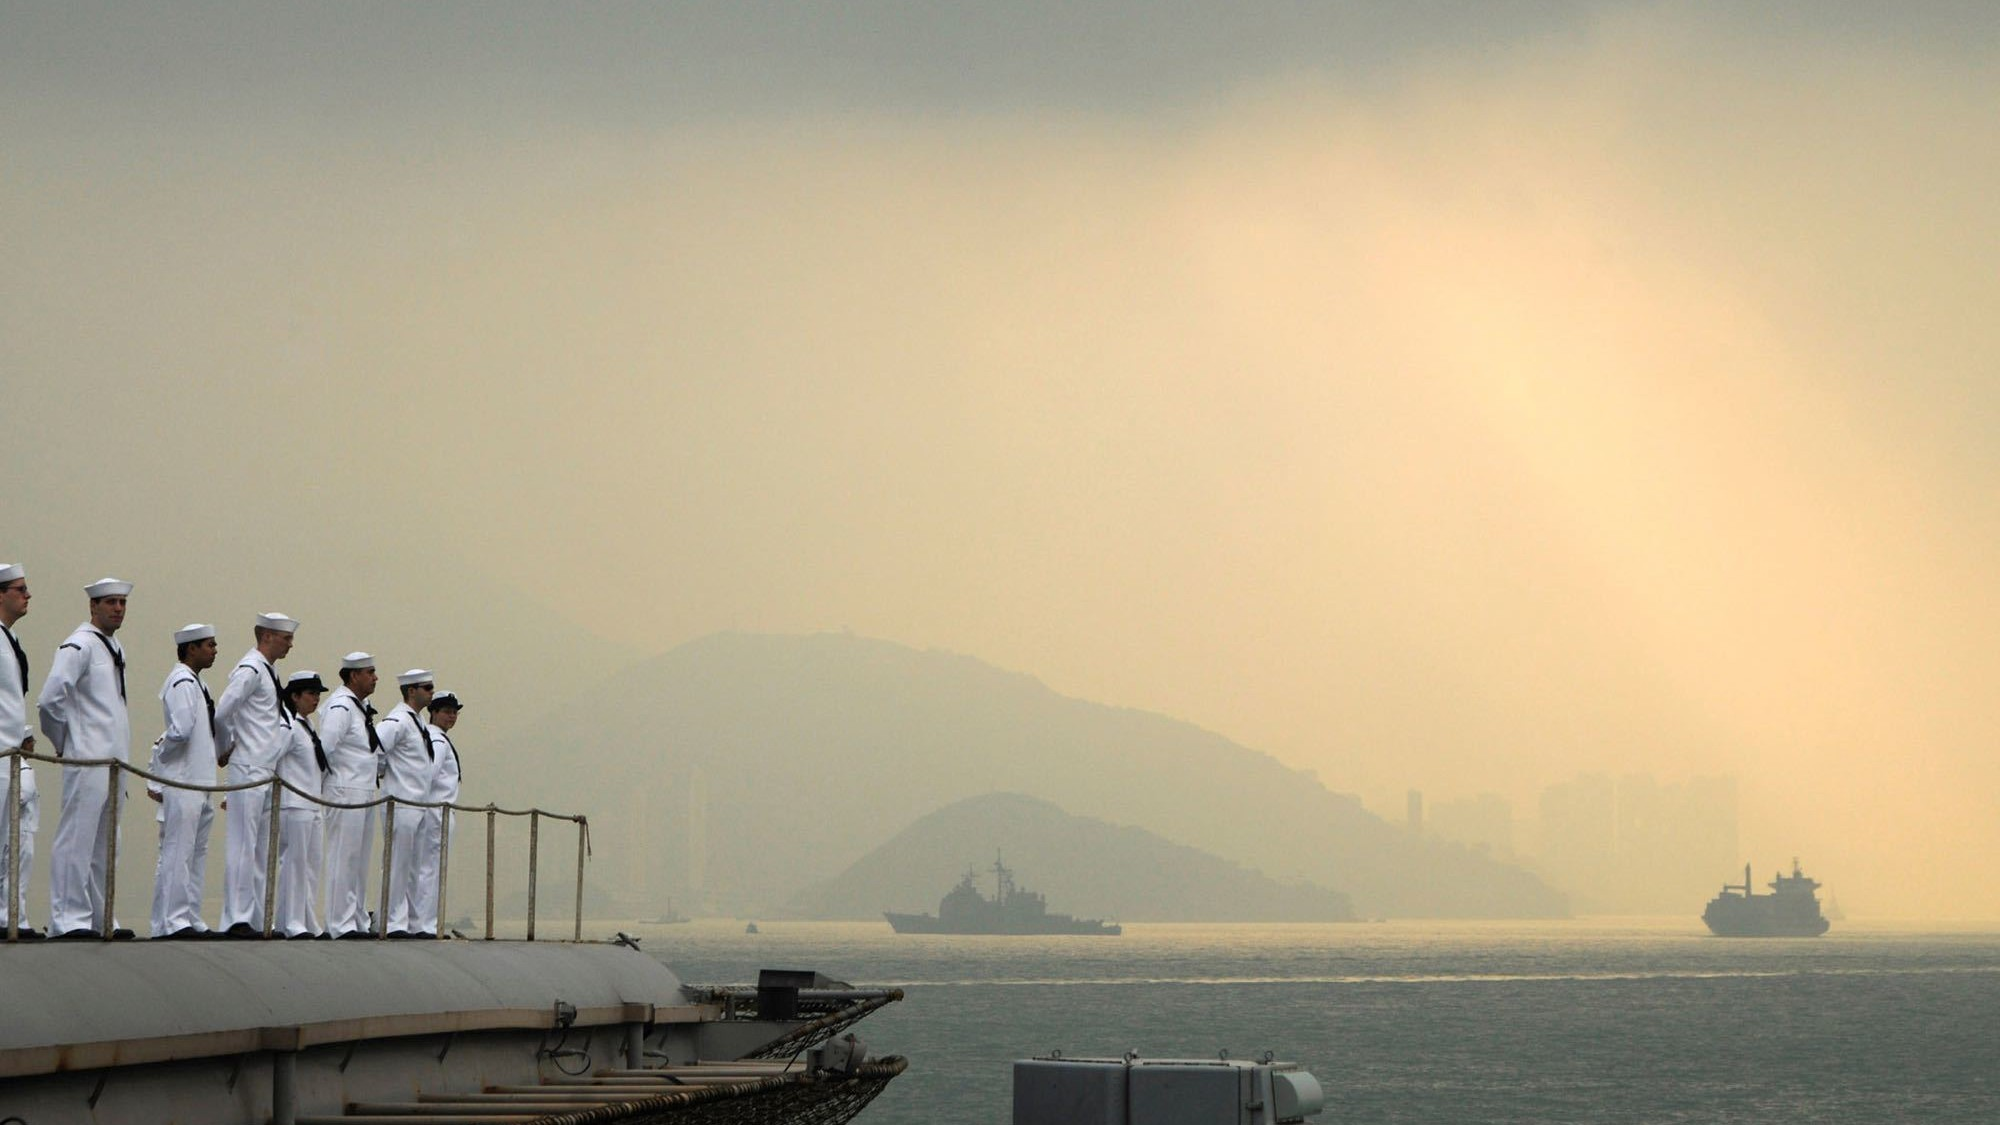 A Chinese spy ship is creeping on a US aircraft carrier near the South China Sea